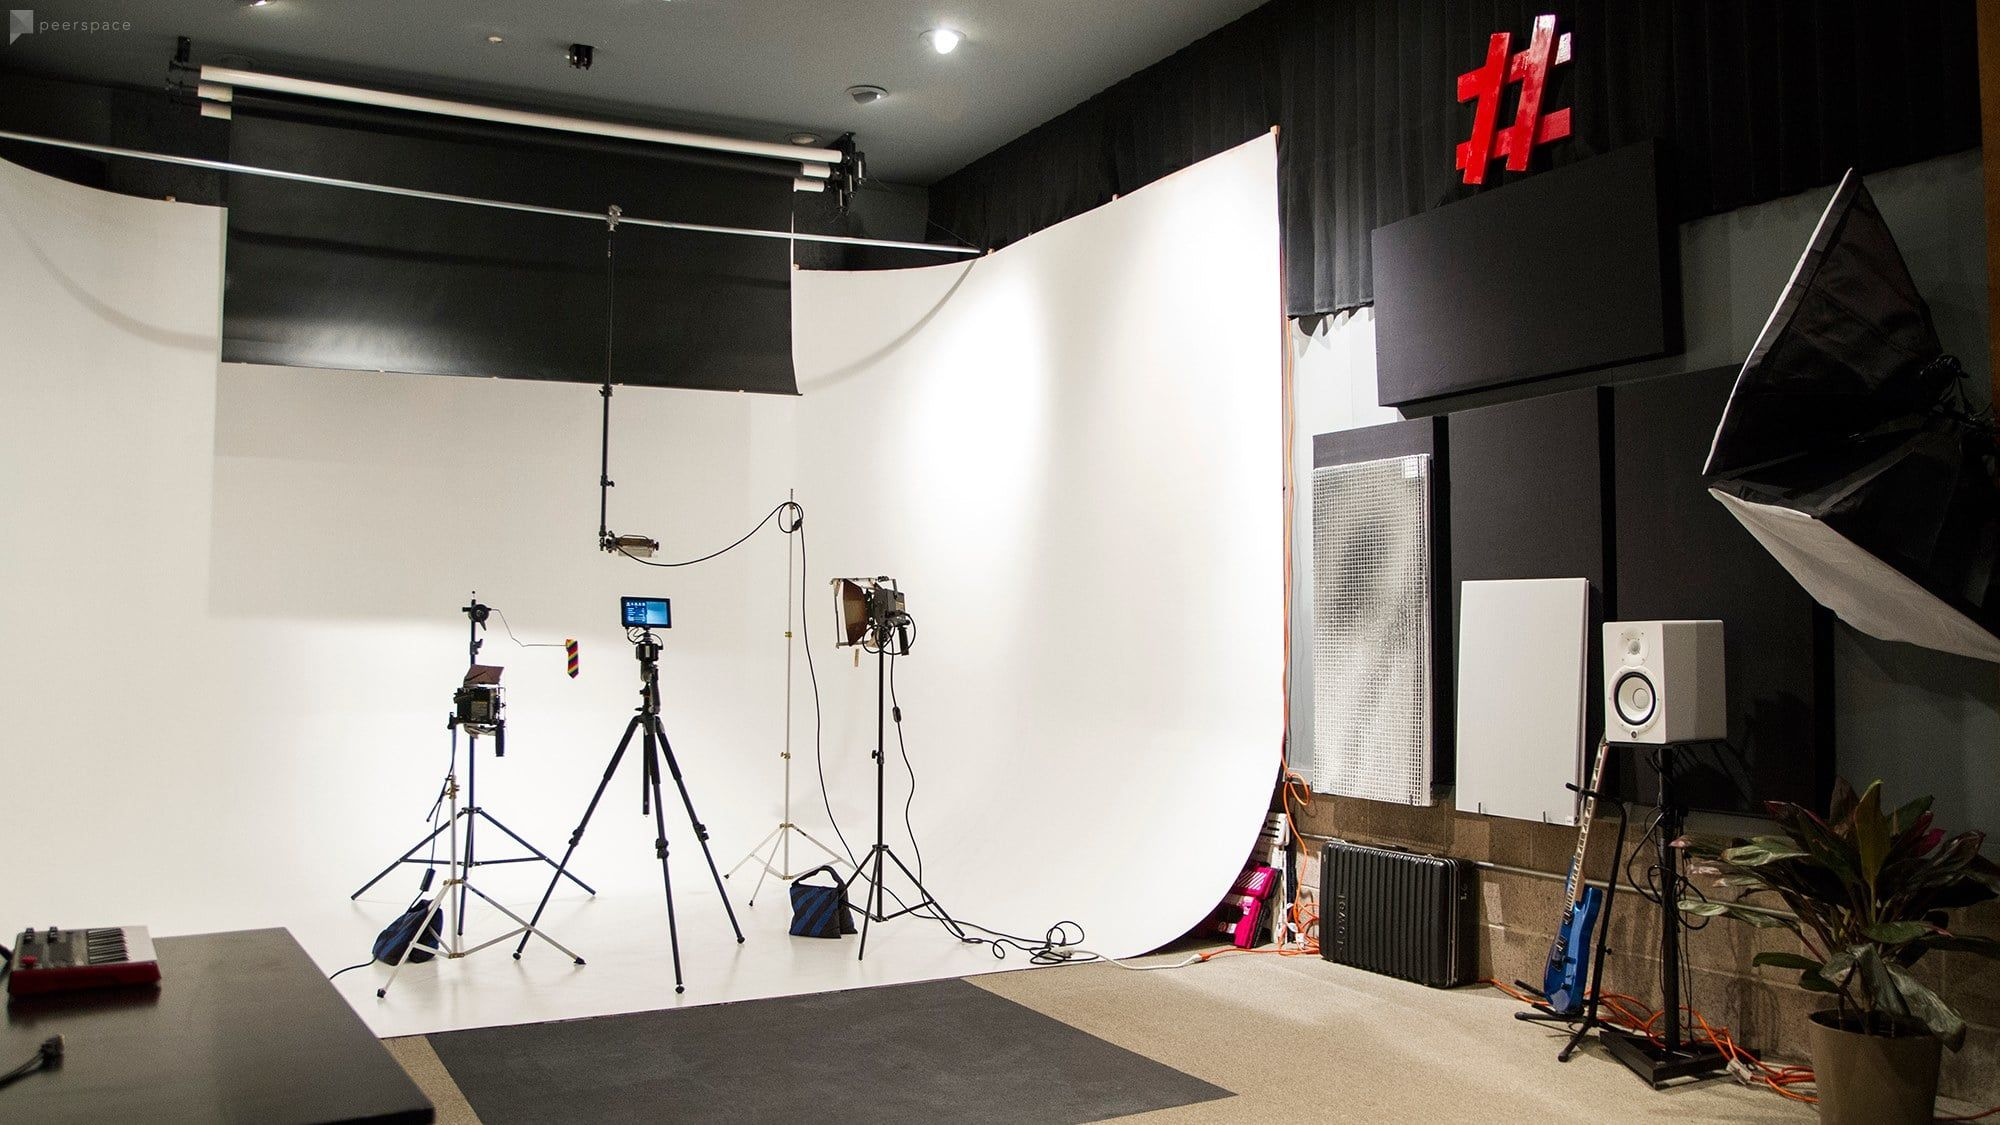 We Have Built Our Futuristic Three Walled White Cyclorama To Provide Photographers And Cinematographers With A New Creative Studio Ceiling Lights Unique Venues